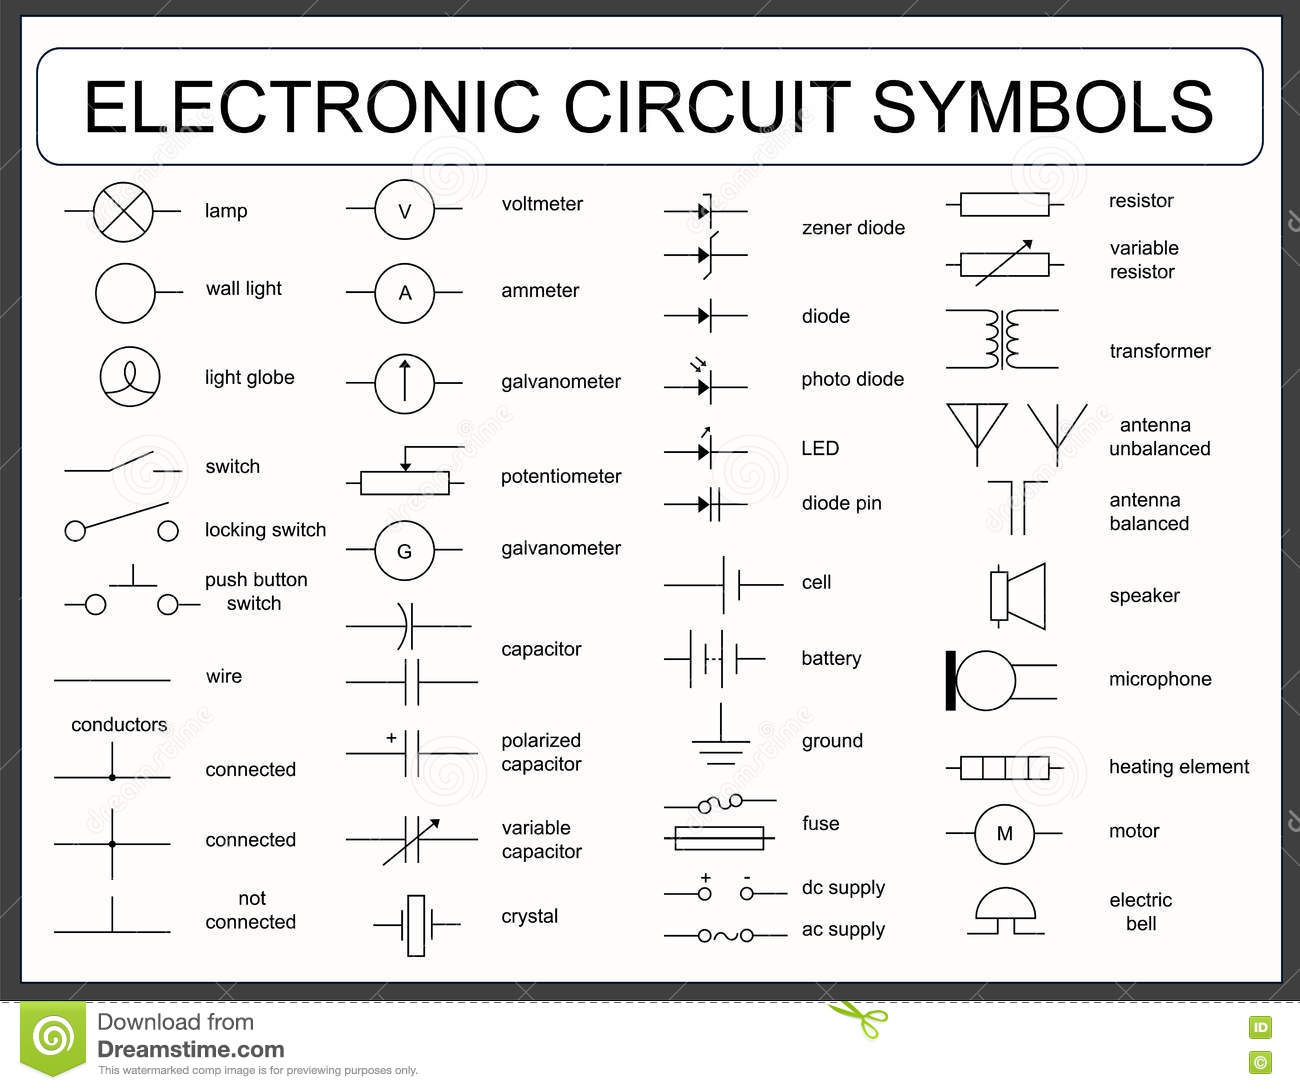 wiring diagram symbols everything wiring diagramhome wiring diagram symbols wiring diagram experts wiring diagram symbols vw electrical diagram symbols wiring diagrams